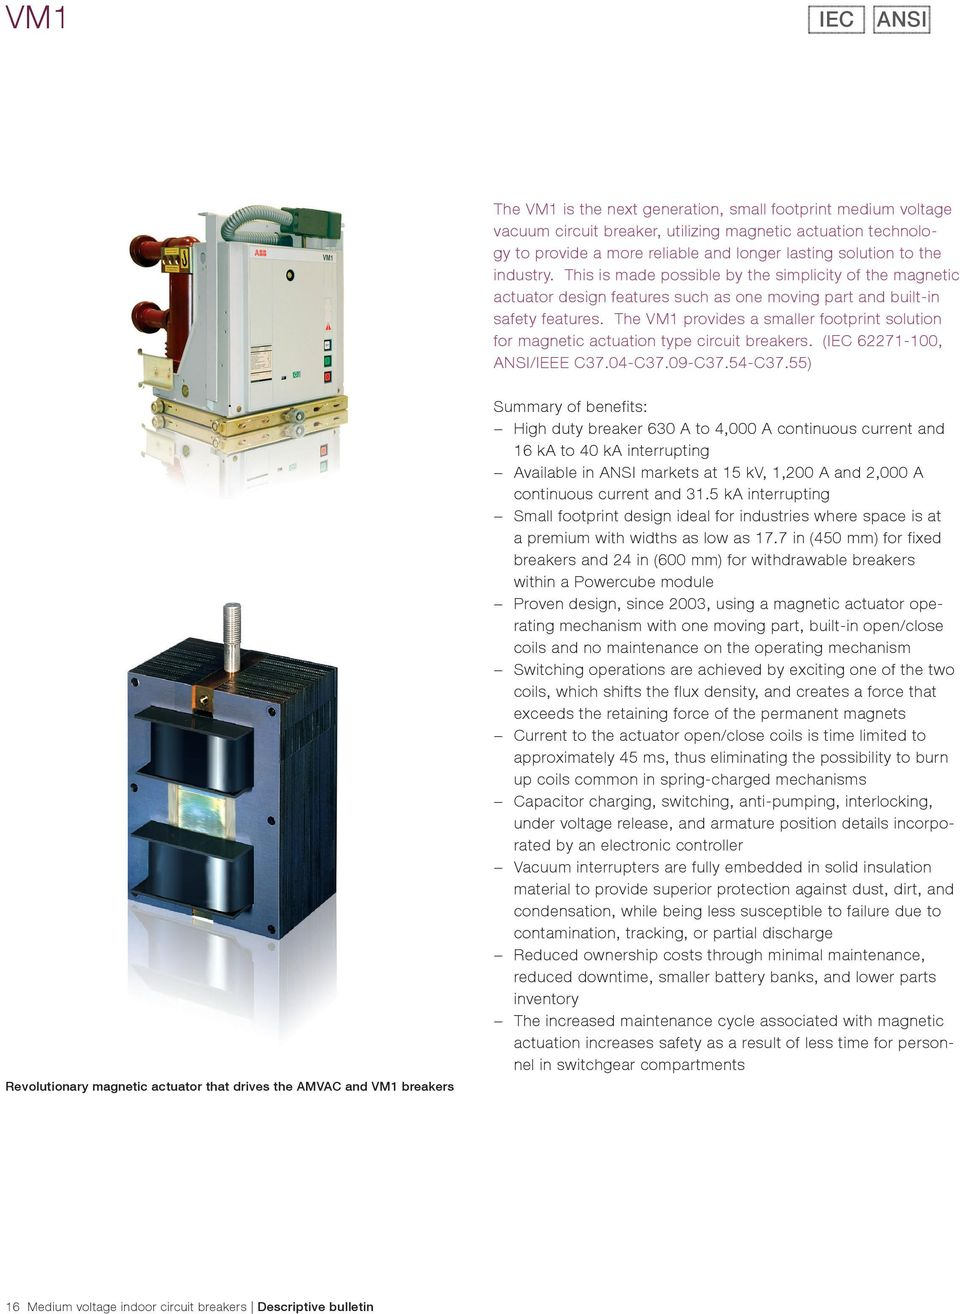 The VM1 provides a smaller footprint solution for magnetic actuation type circuit breakers. ( 62271-100, ANSI/IEEE C37.04-C37.09-C37.54-C37.